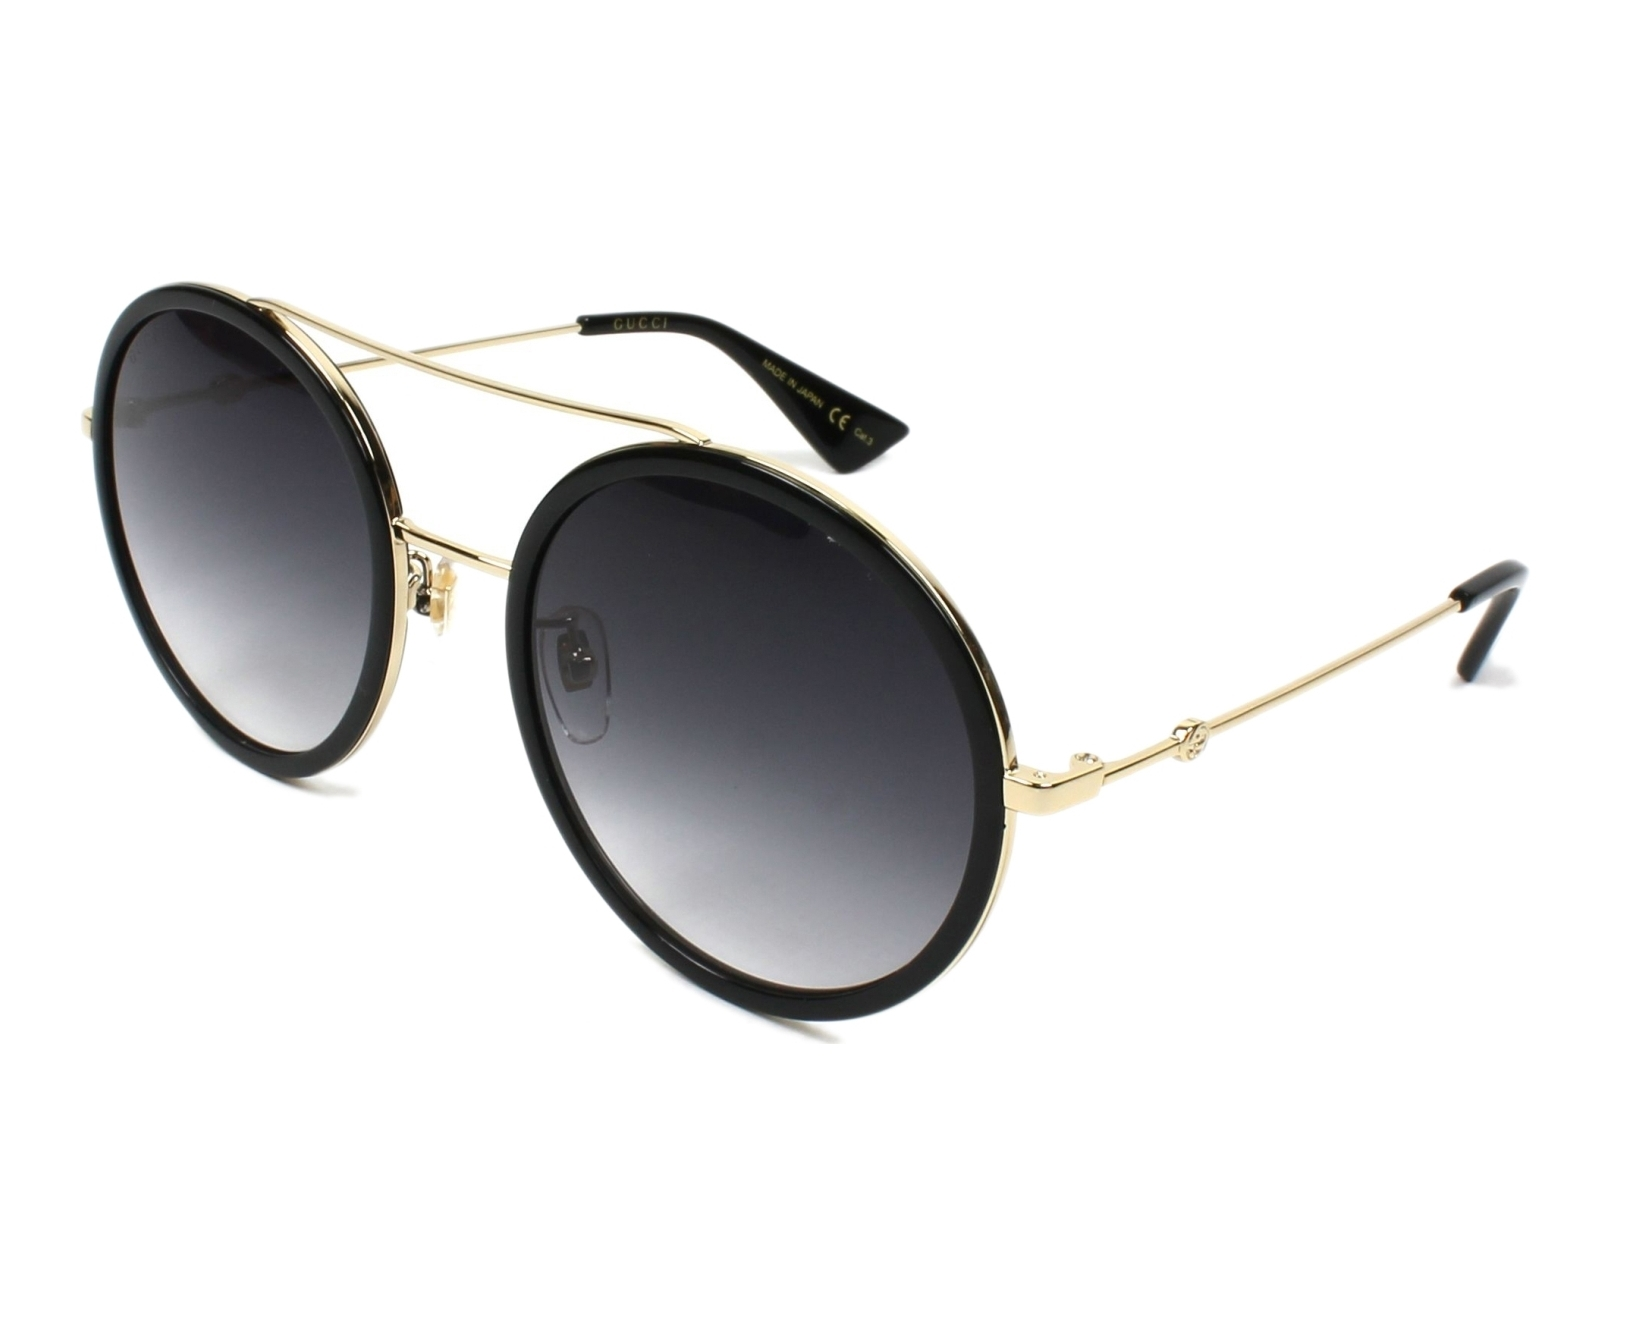 f4f8510ea0fe0 Gucci - Buy Gucci sunglasses online at low prices